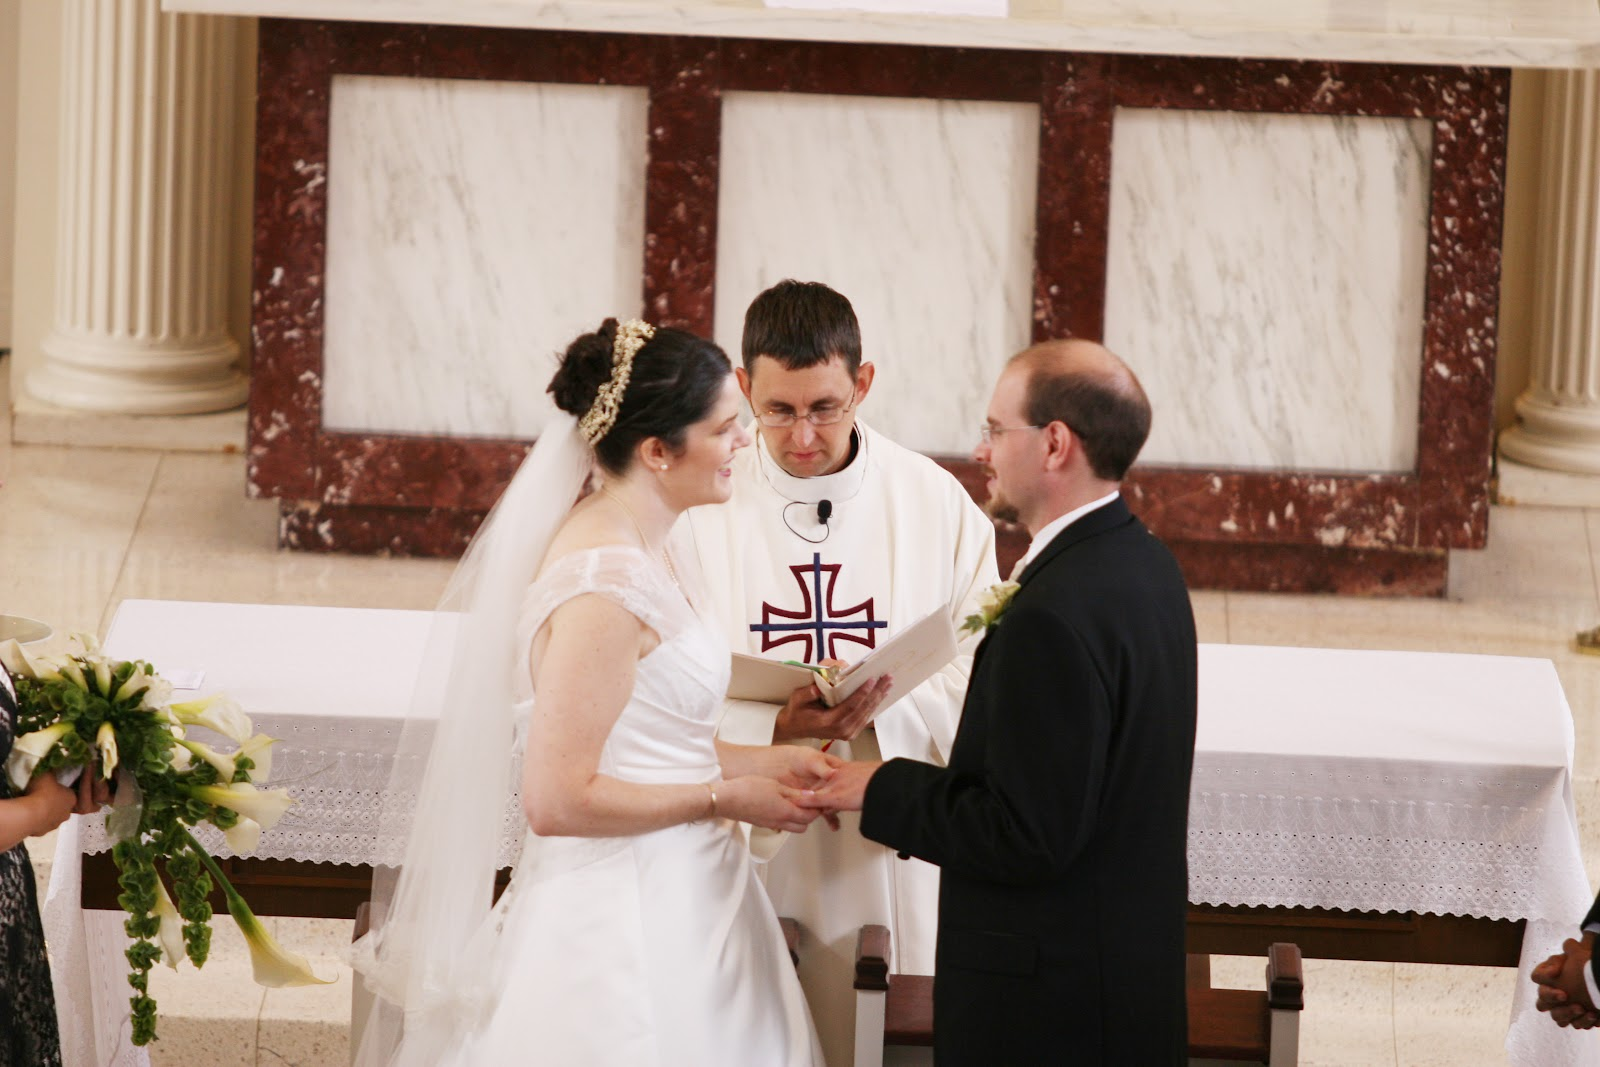 dating engaged getting married catholic